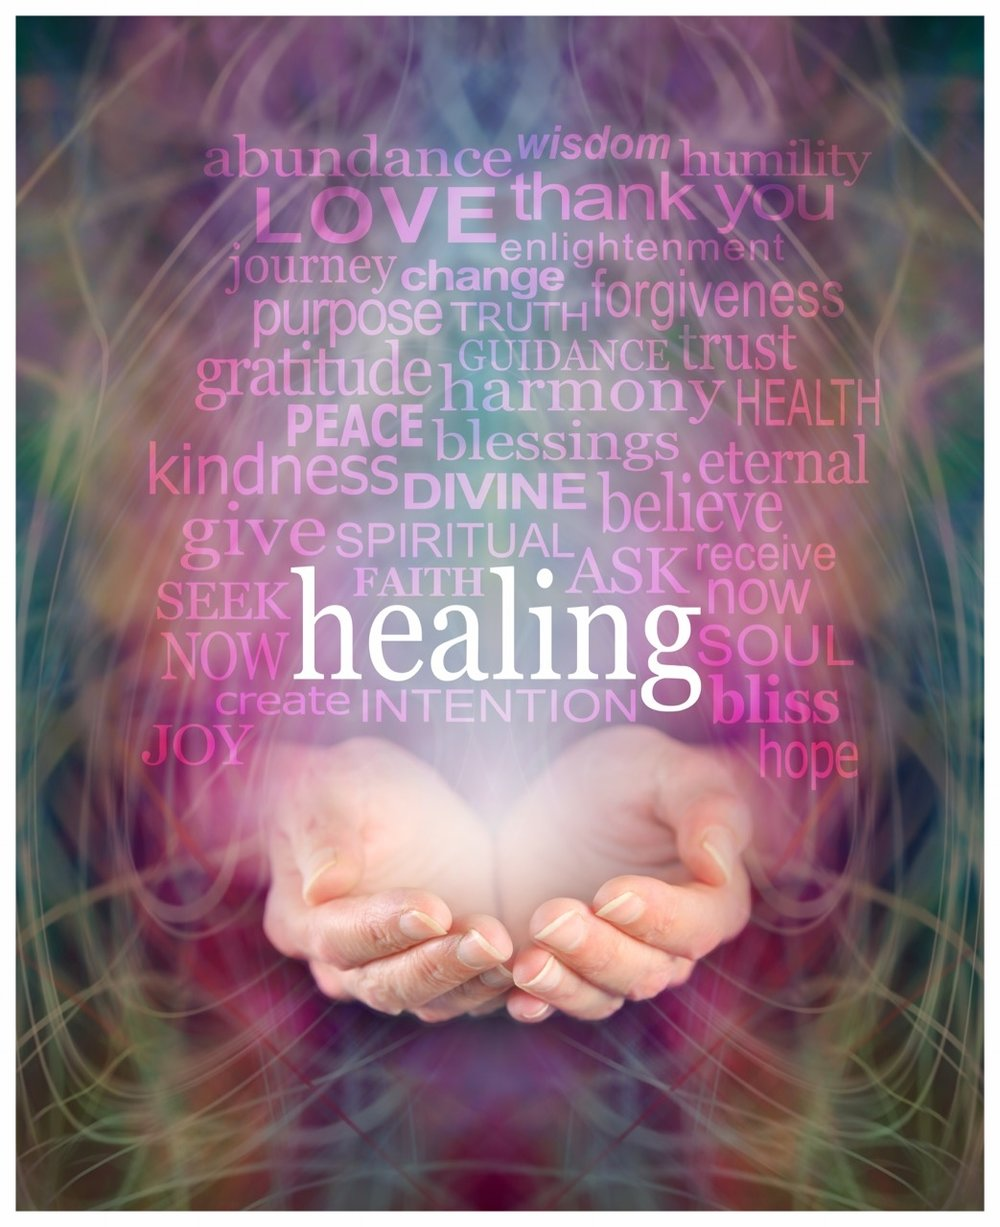 True healing is a dance between the physical and the numinous, each influencing the expression of the other.